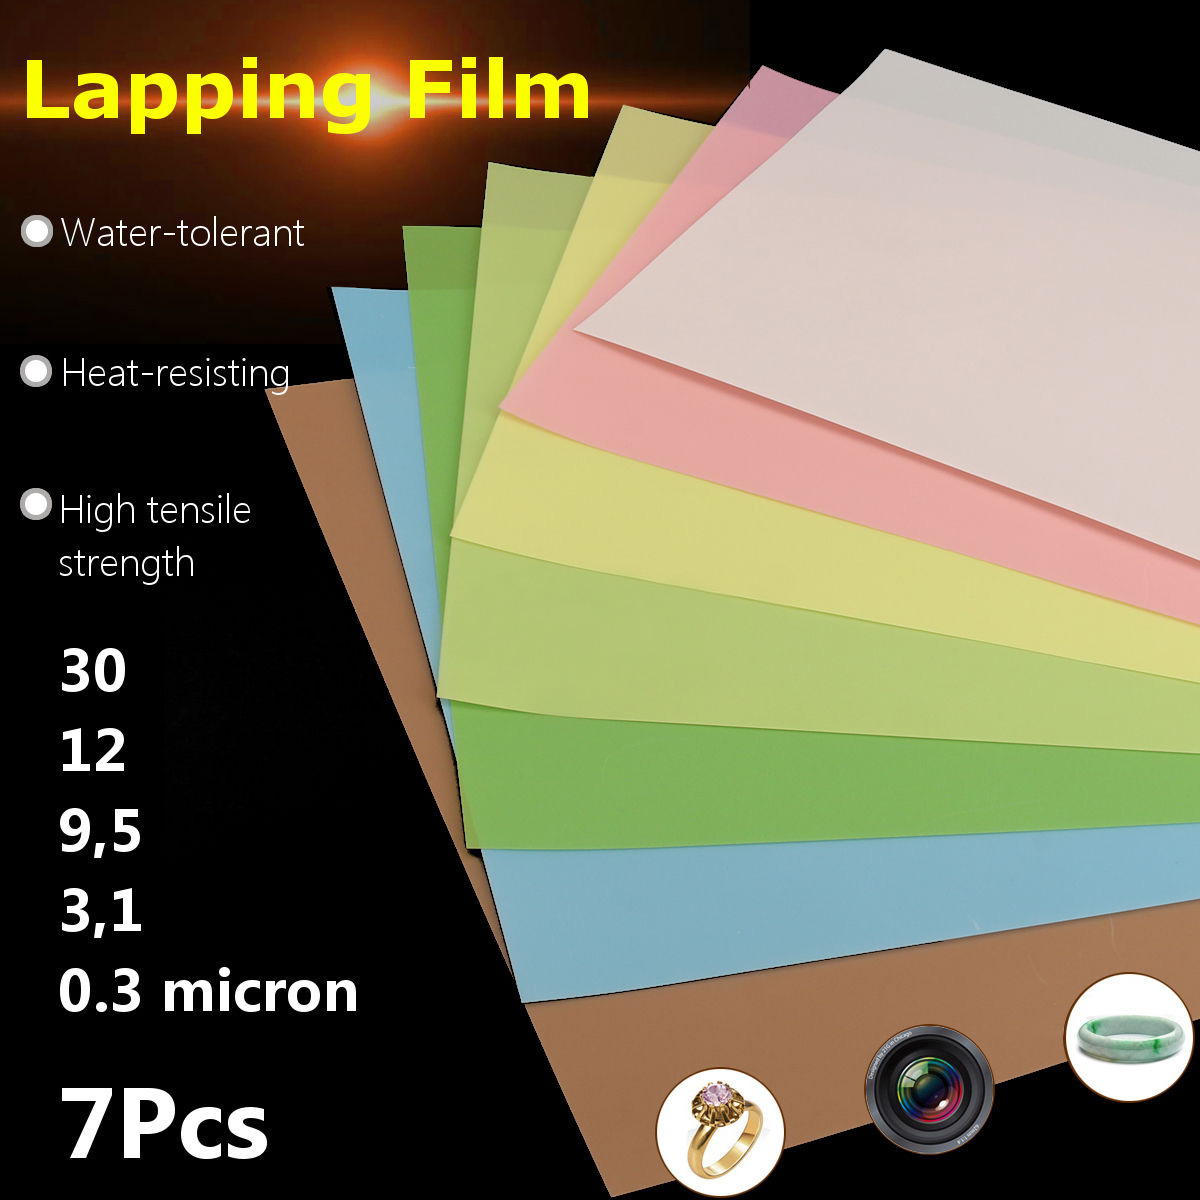 8.7x11 3 Metre Microfinishing Sheet Lapping Film Assortment 30,12,9,3,1,5 0.3